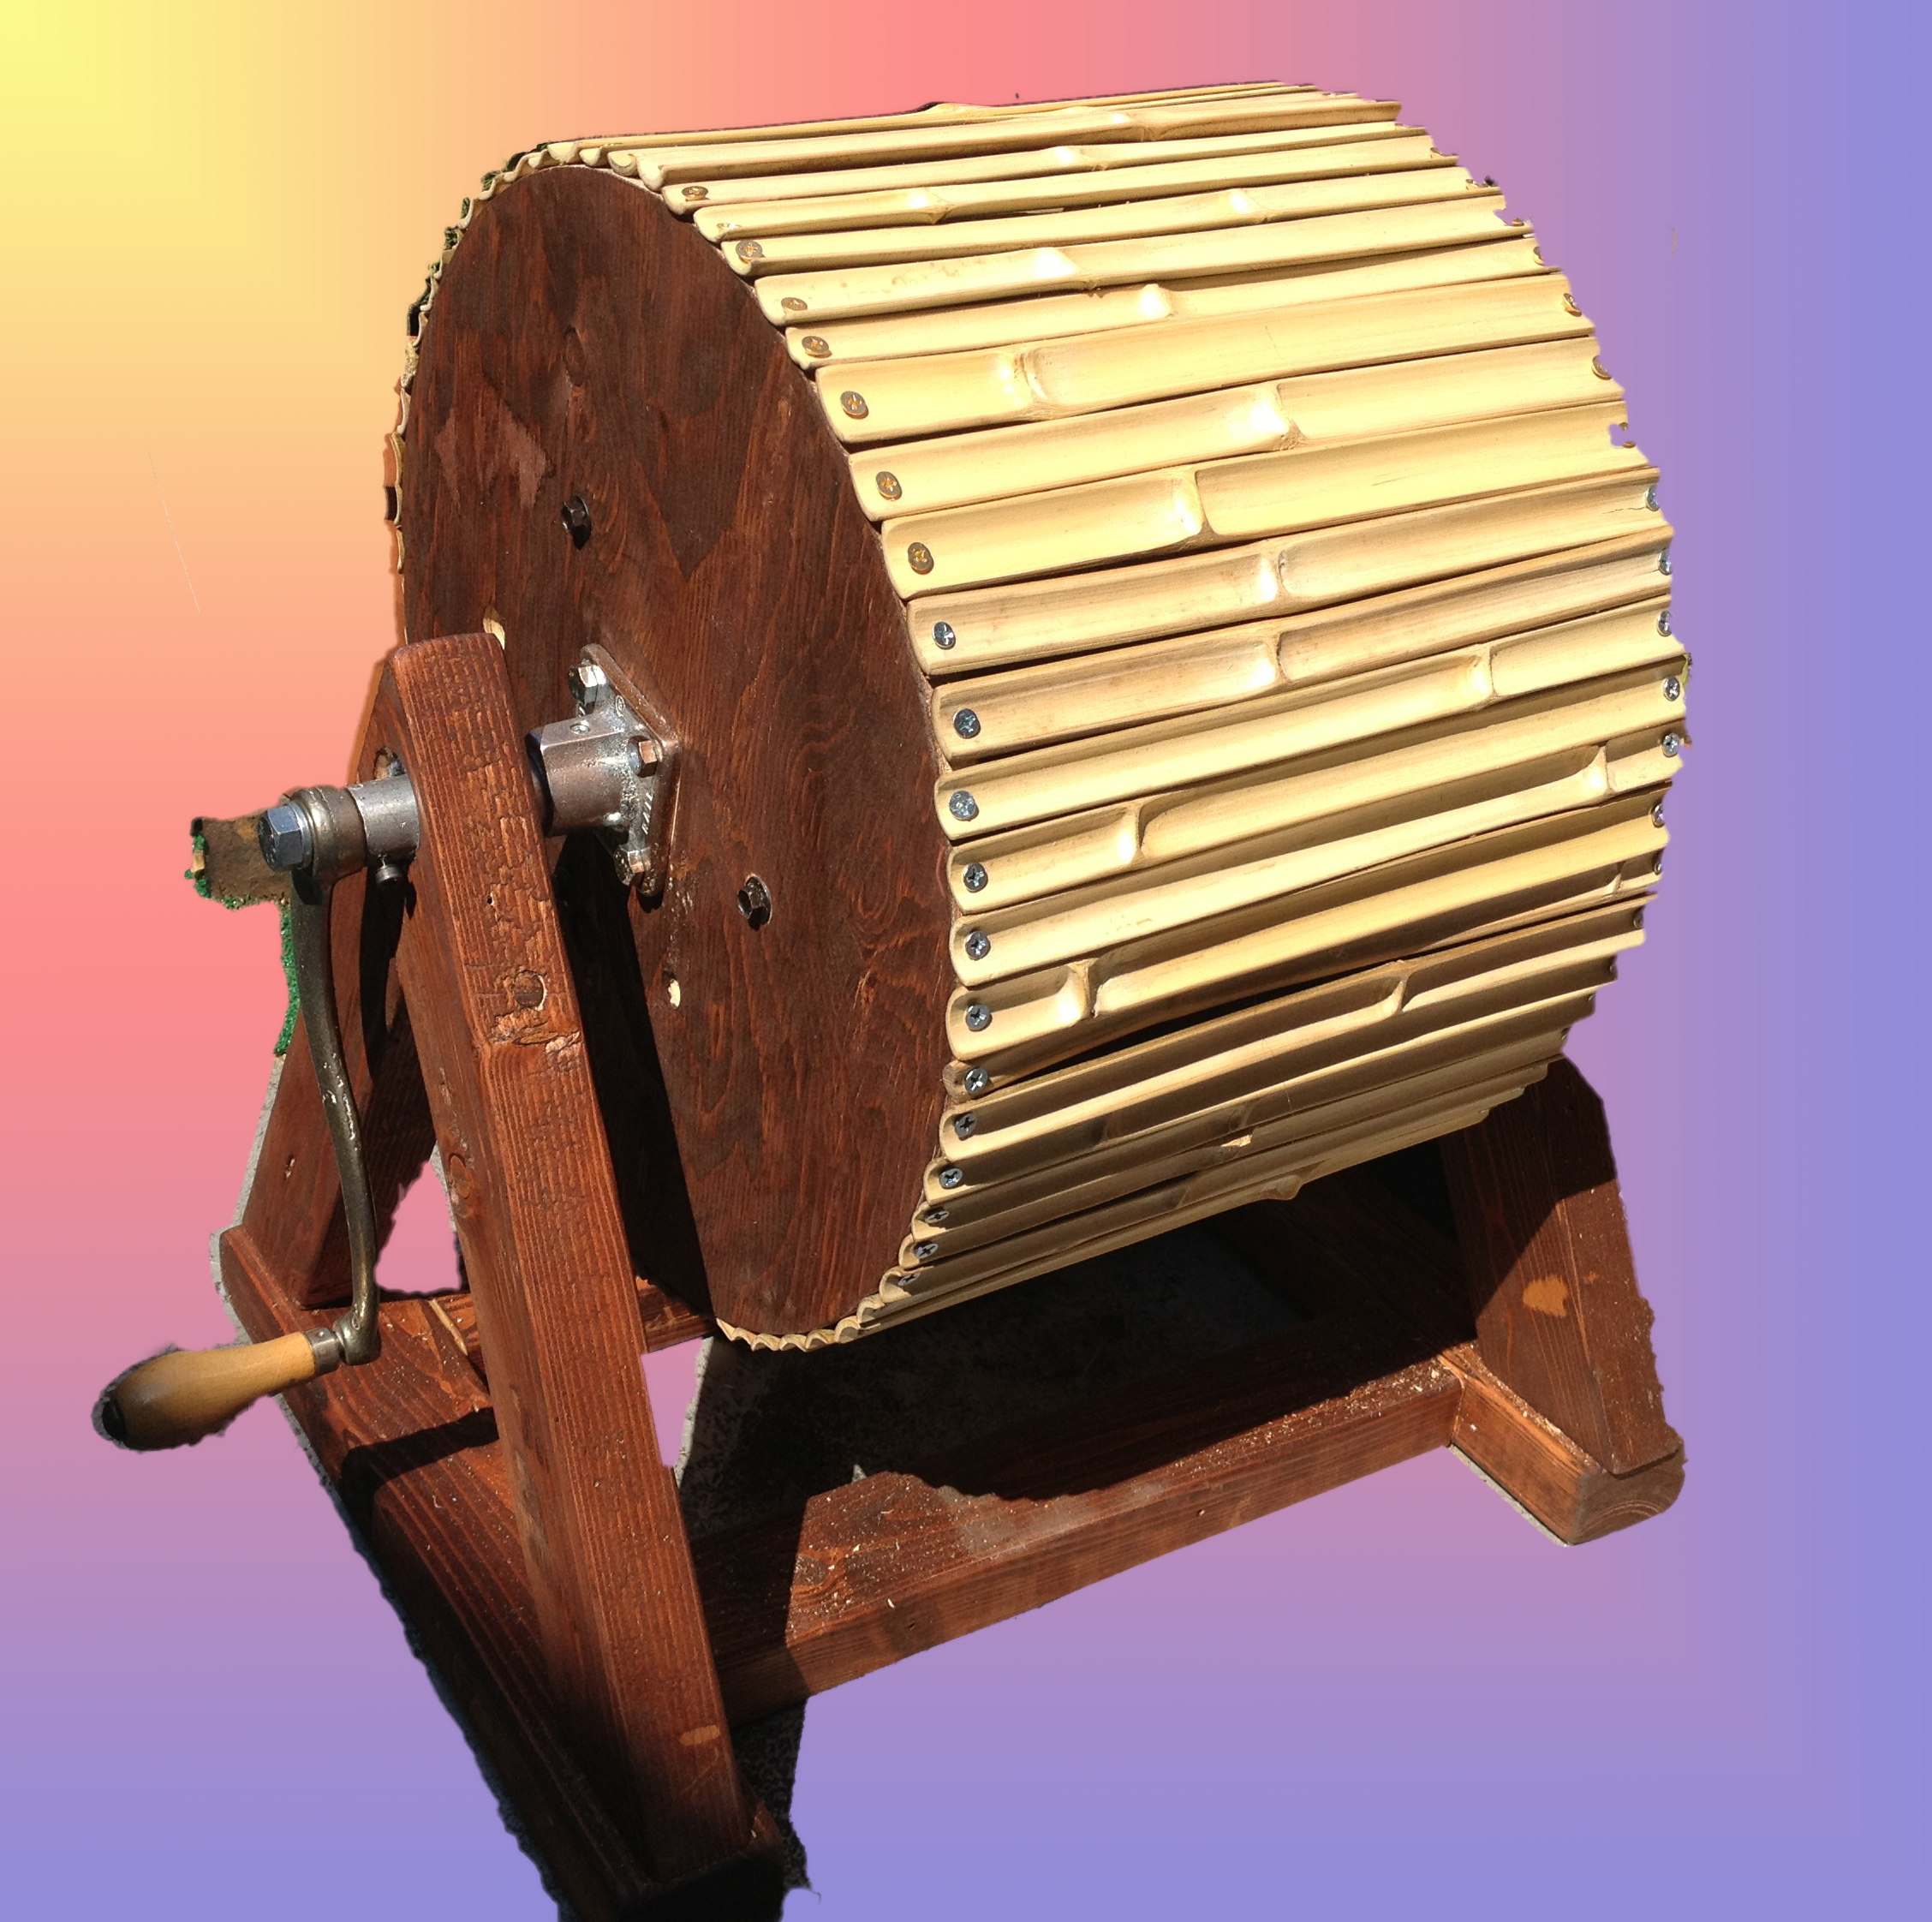 The Bambingo is a hand-cranked instrument made out of bamboo. It is designed with the idea that it is a sound loop